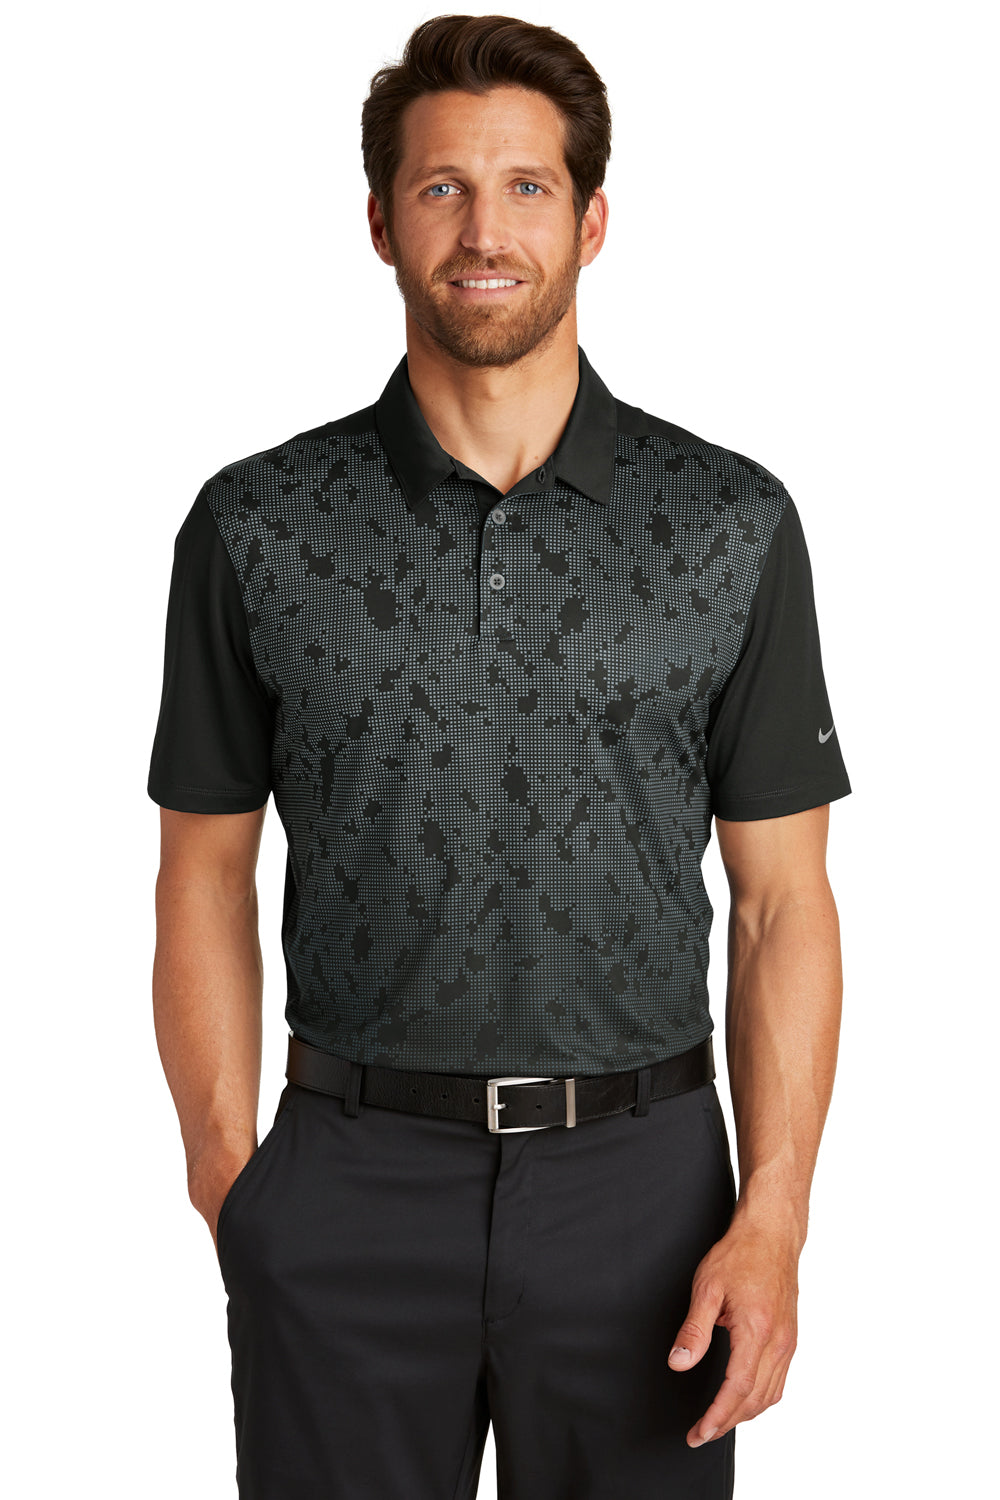 Nike 881658 Mens Dri-Fit Moisture Wicking Short Sleeve Polo Shirt Black/Dark Grey Front